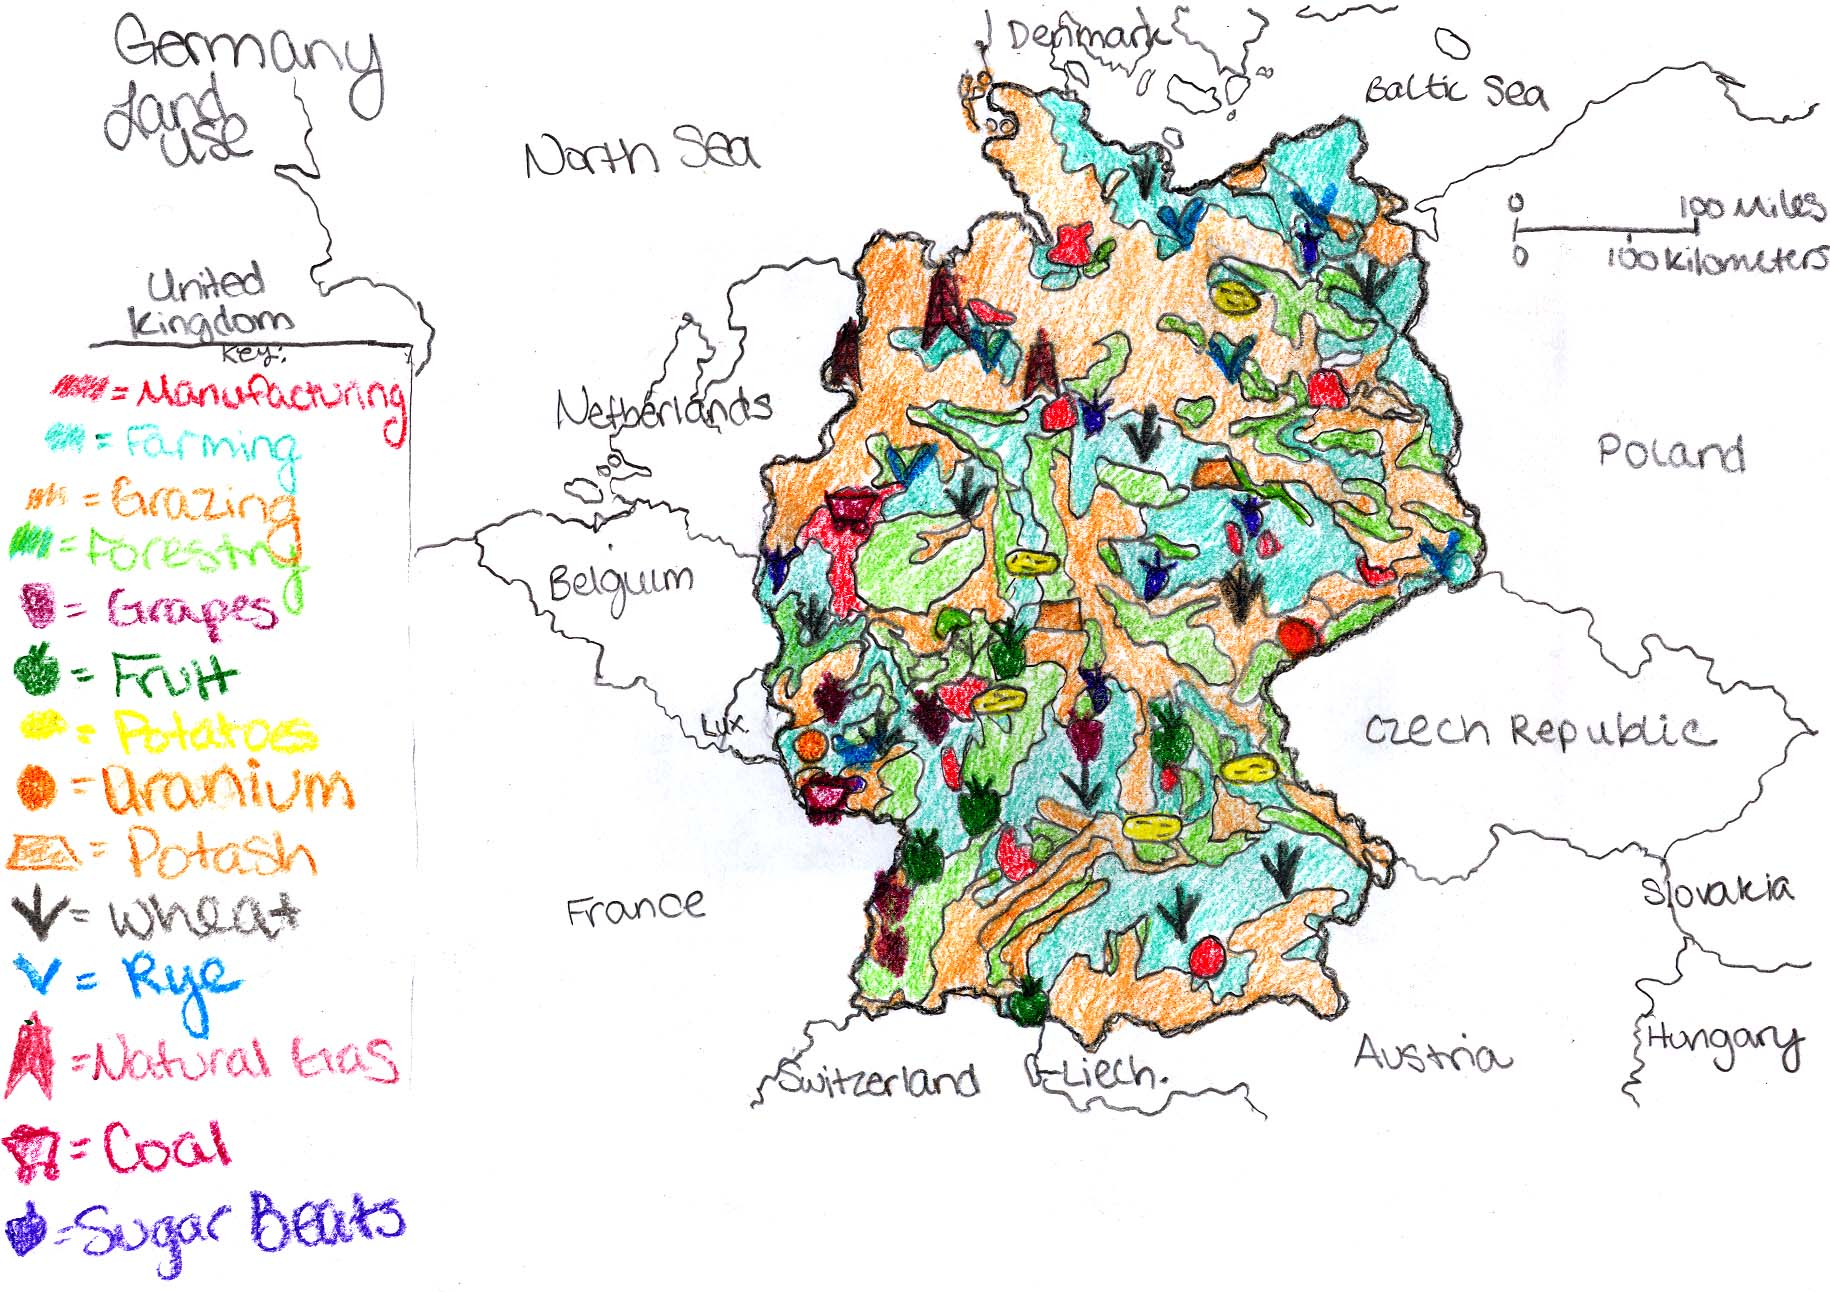 Map Of Germany Natural Resources.Germany Natural Resources Related Keywords Suggestions Germany